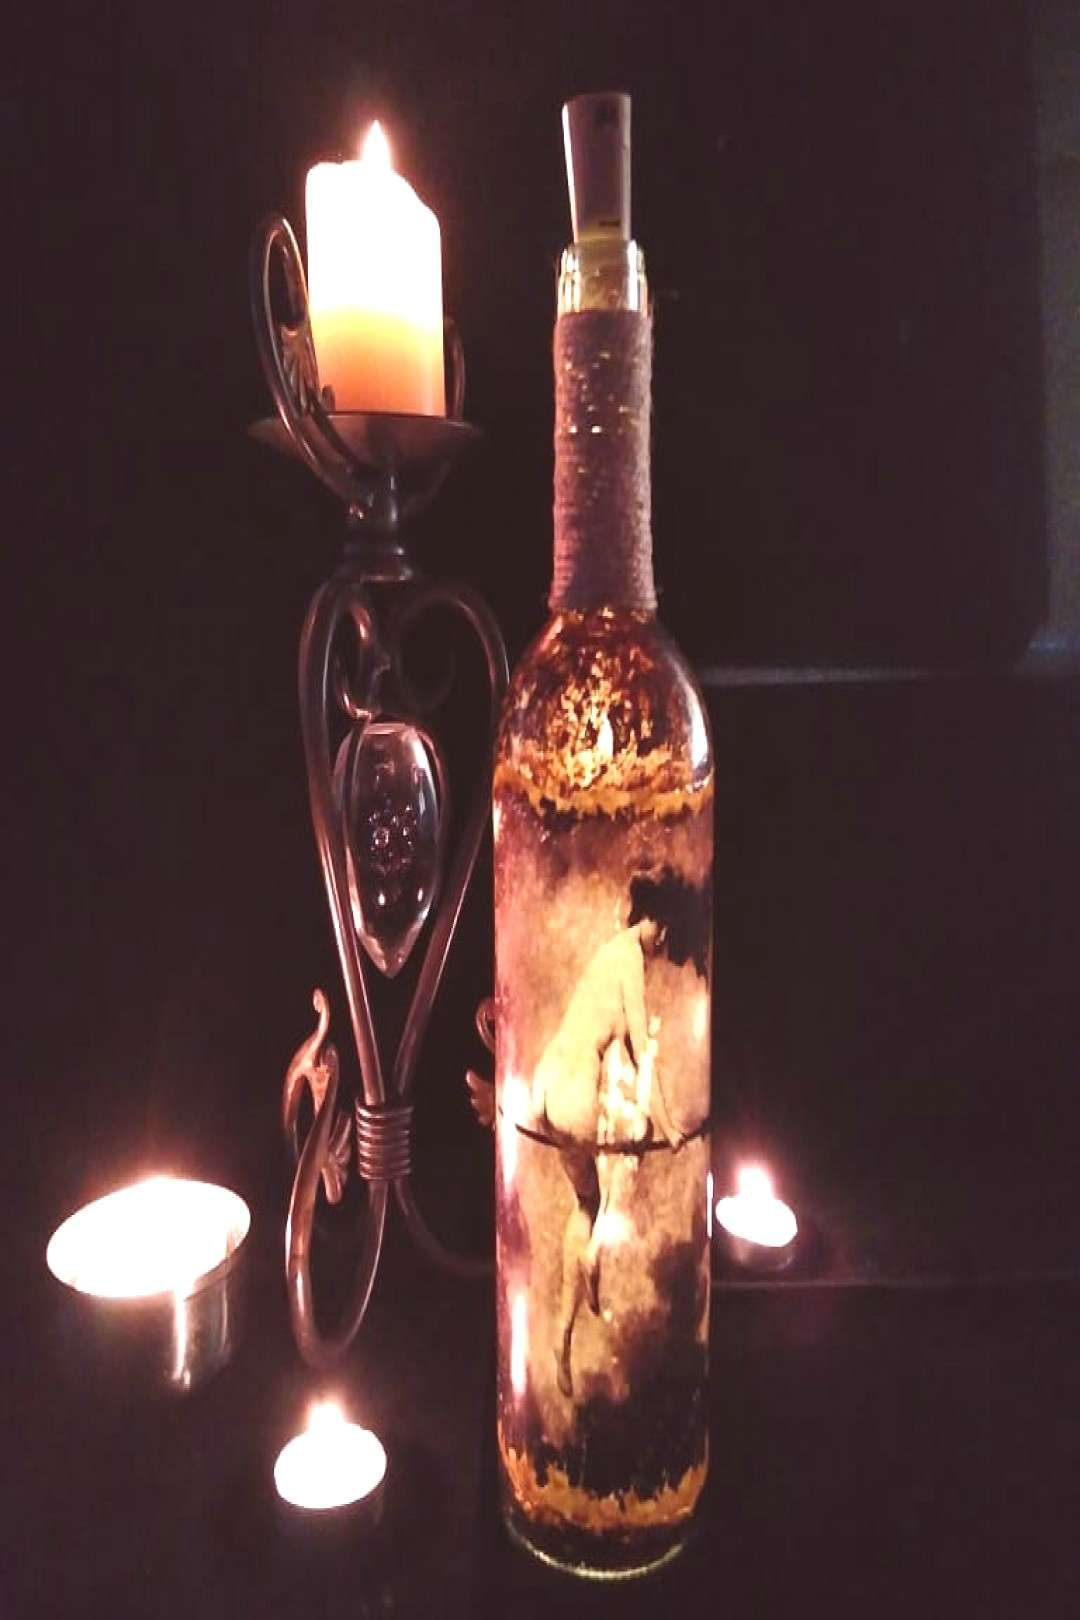 7 new antique effect hand decorated wine bottles please swipe to